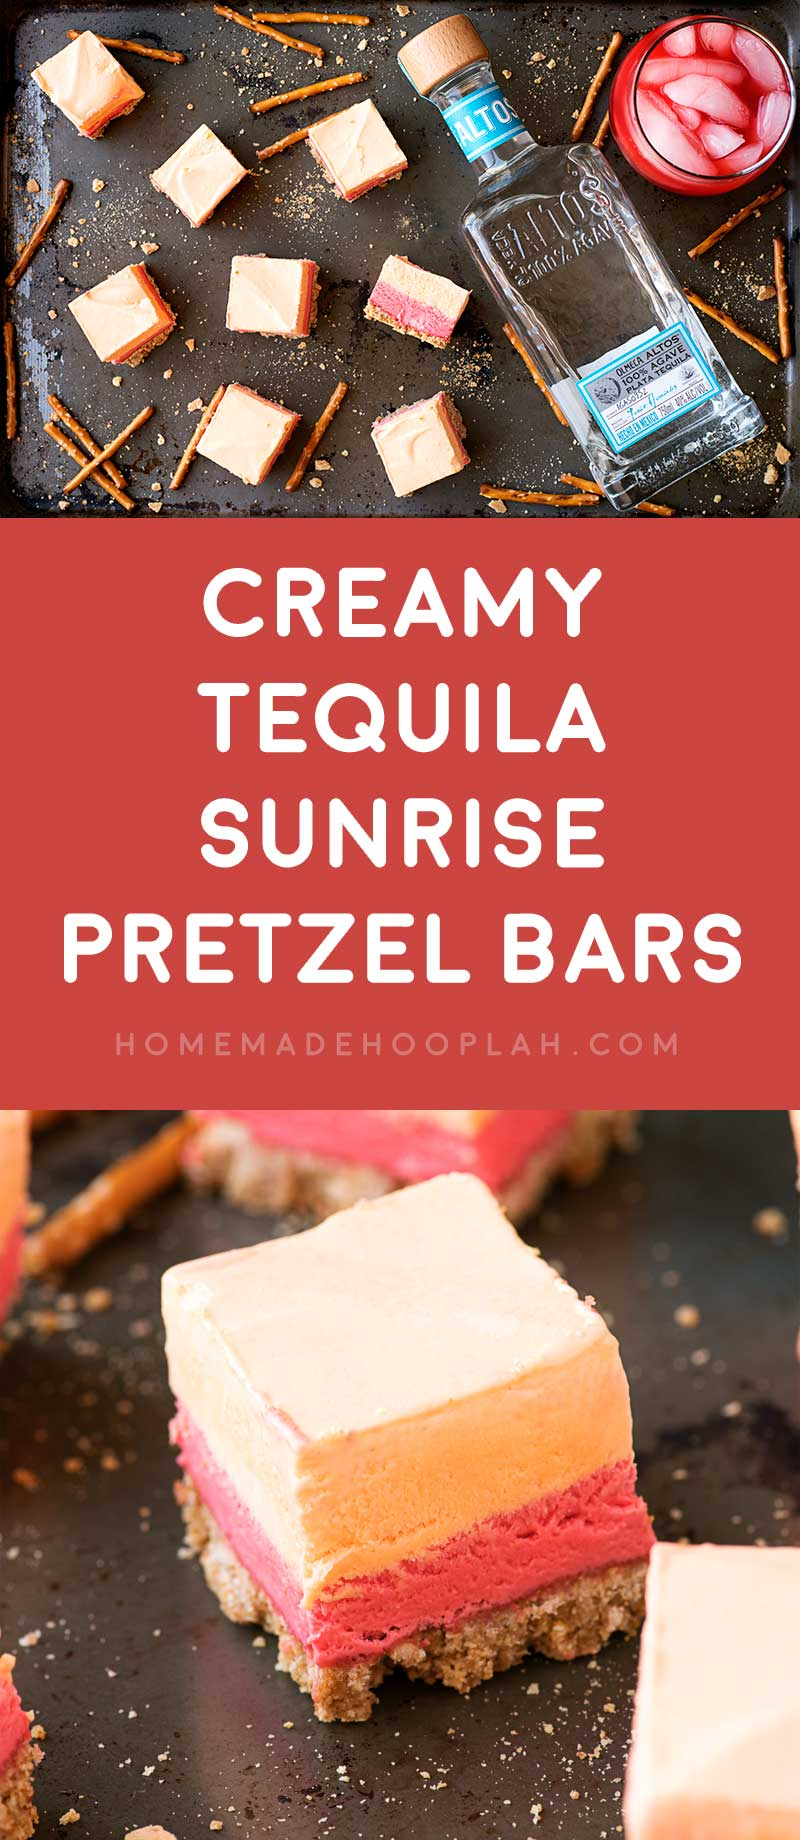 Creamy Tequila Sunrise Pretzel Bars! An edible version of the famous cocktail, these pretzel bars combine orange and grenadine tequila spiked cream with a crunchy sweet pretzel crust. #ad #AltosTequila #ThisIsOurTequila #FieldNotes @AltosTequila | HomemadeHooplah.com